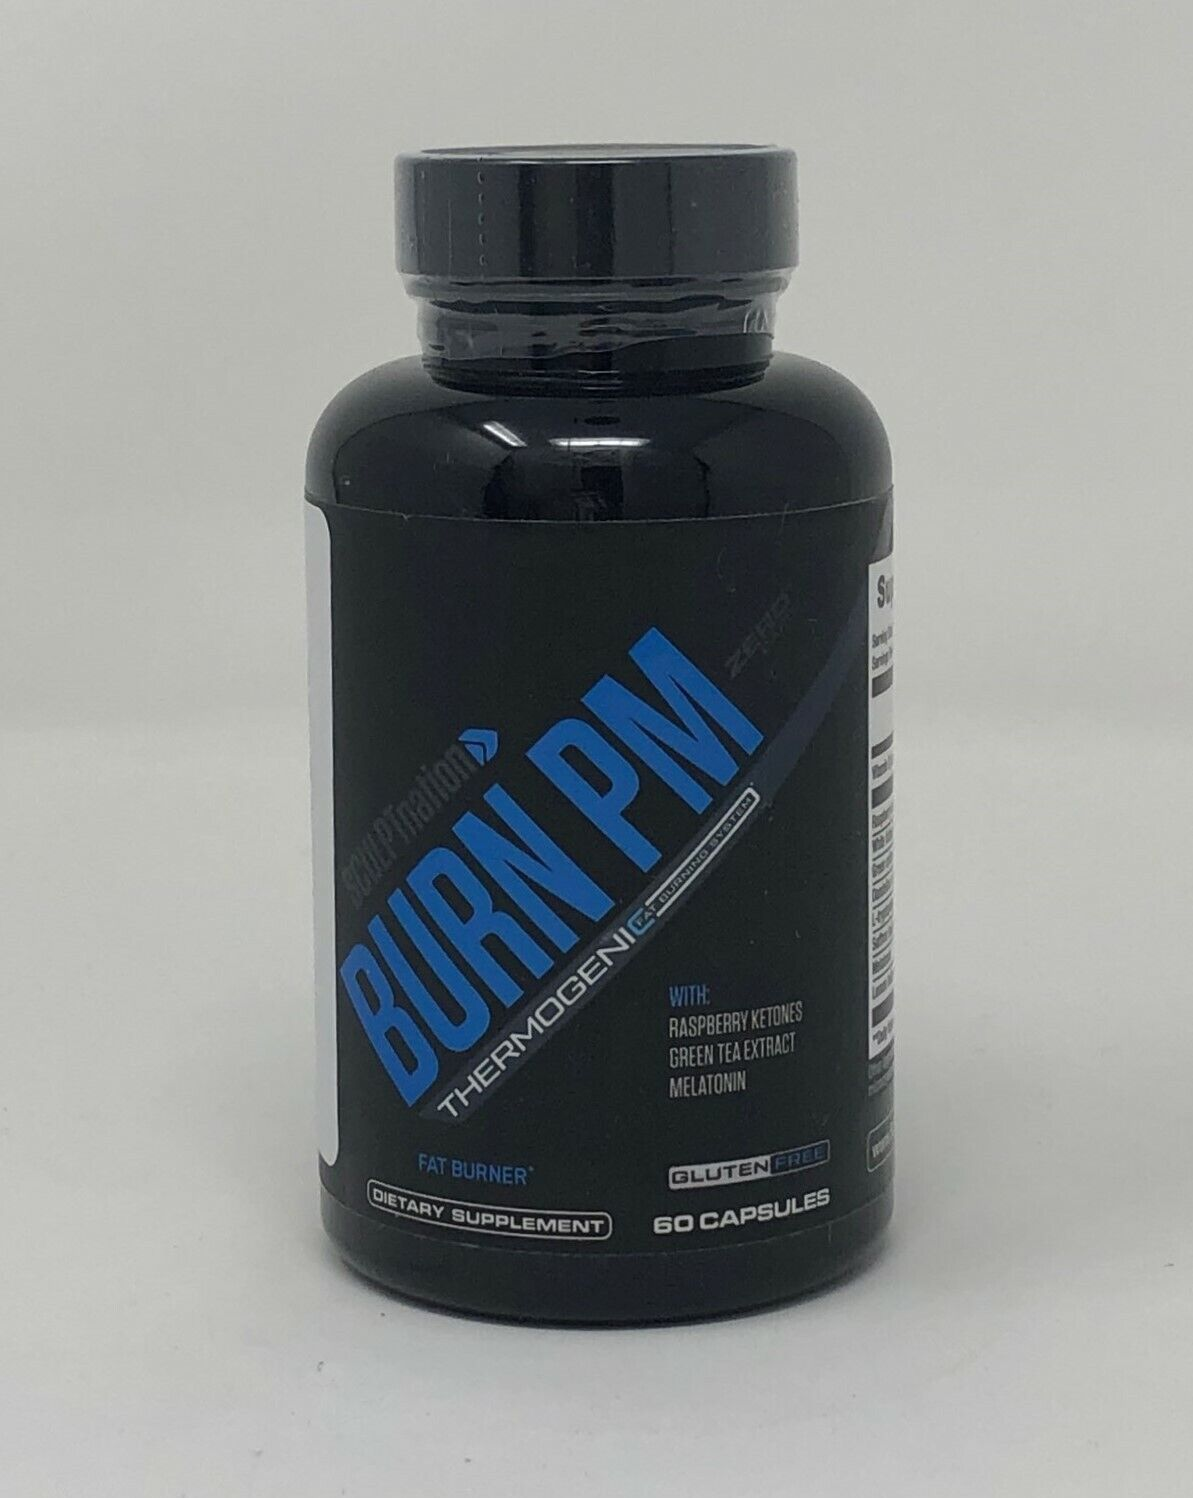 SCULPTnation BURN PM 60 Capsules (1 bottle)